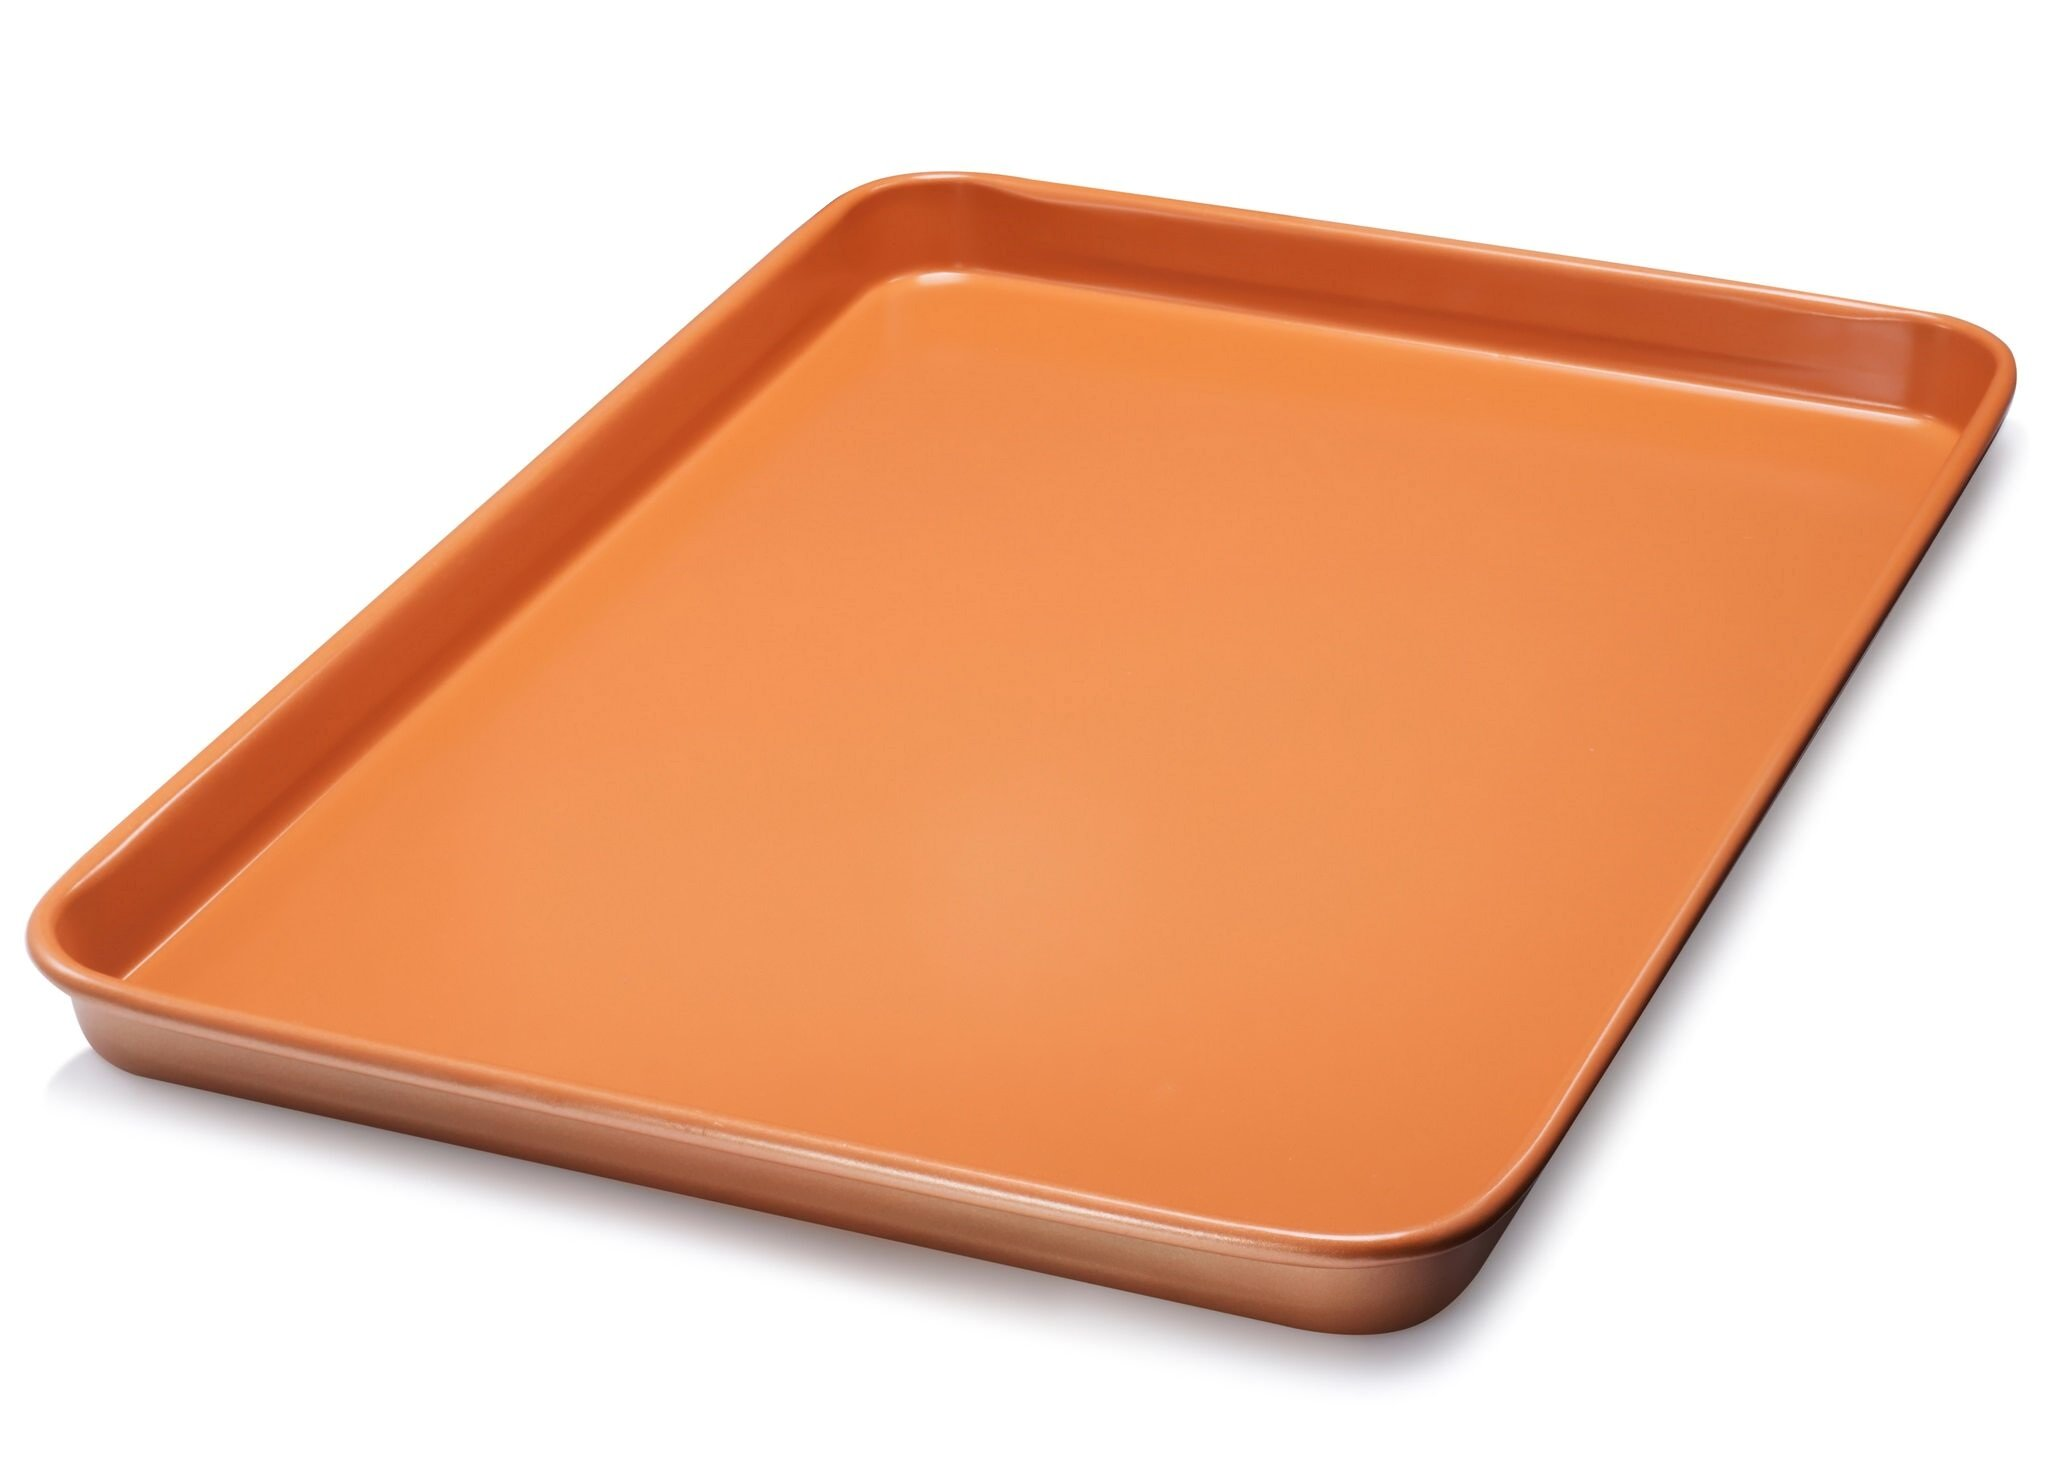 Gotham Steel Nonstick Copper Cookie Sheet and Jelly Roll Baking Pan 12'' x 17'' – 1 PACK